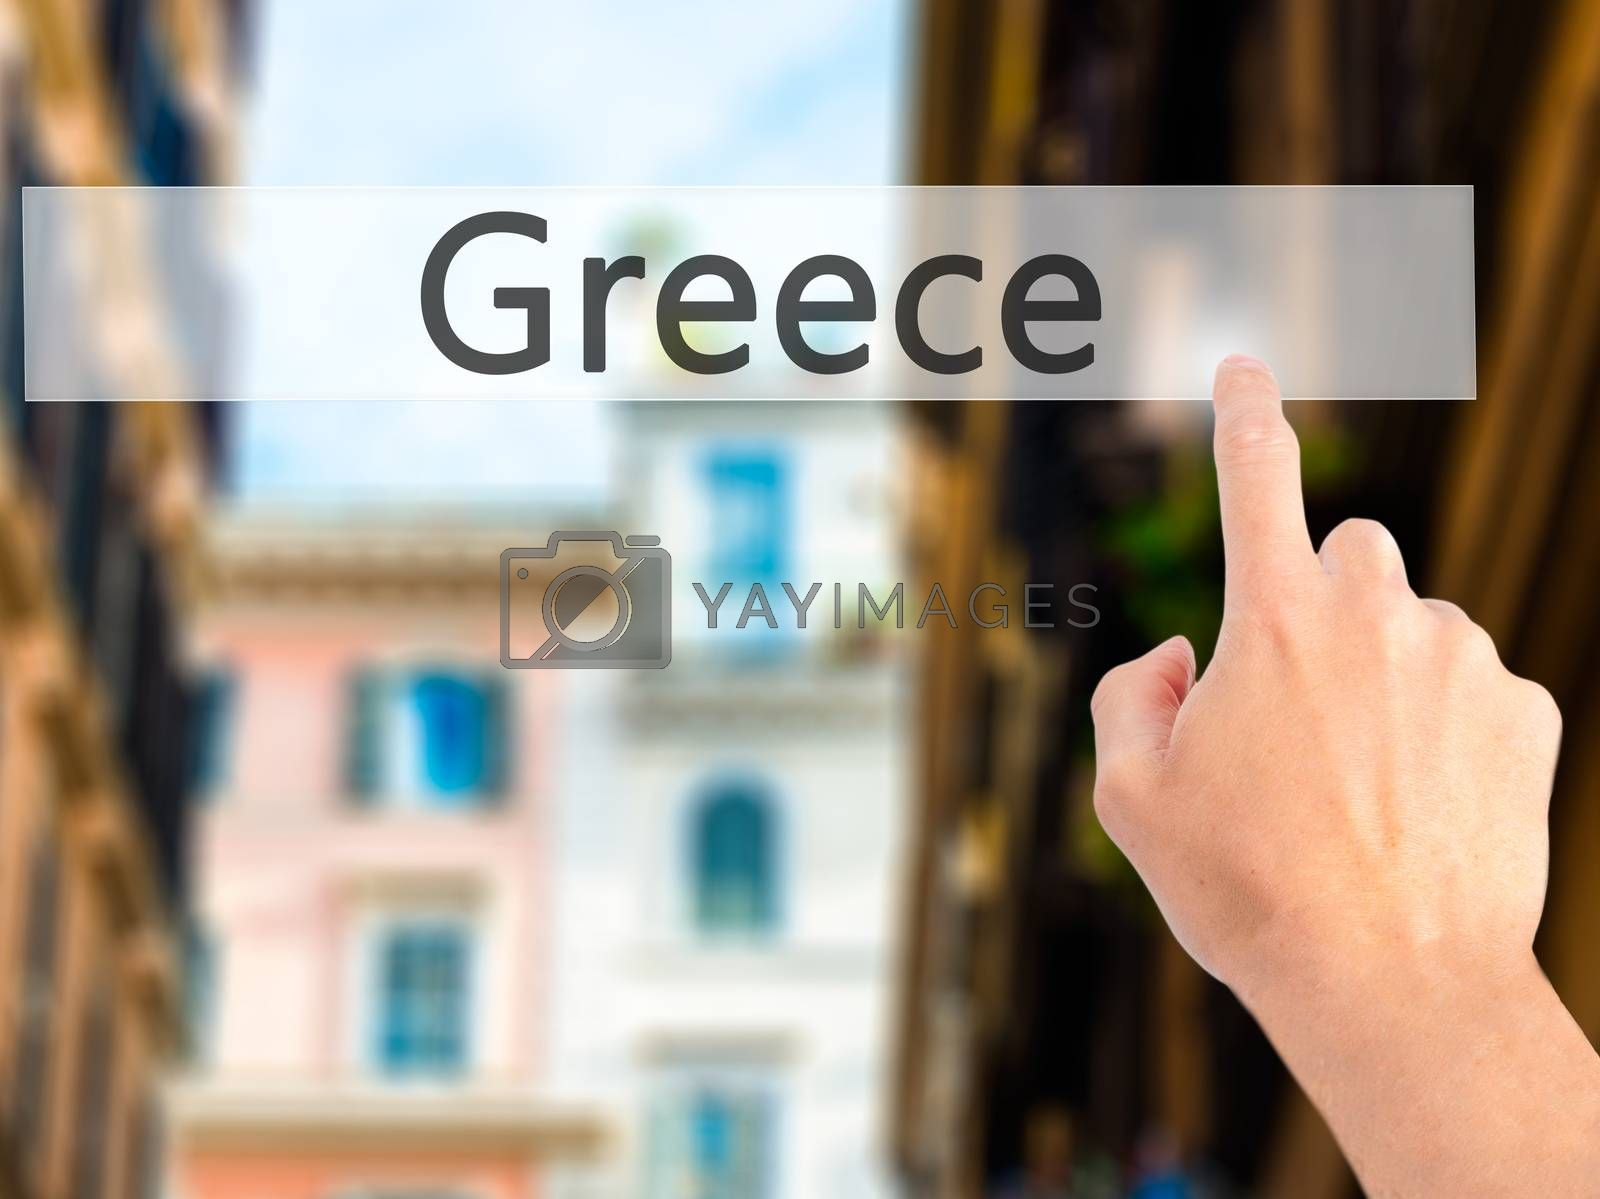 Greece - Hand pressing a button on blurred background concept on by netsay.net